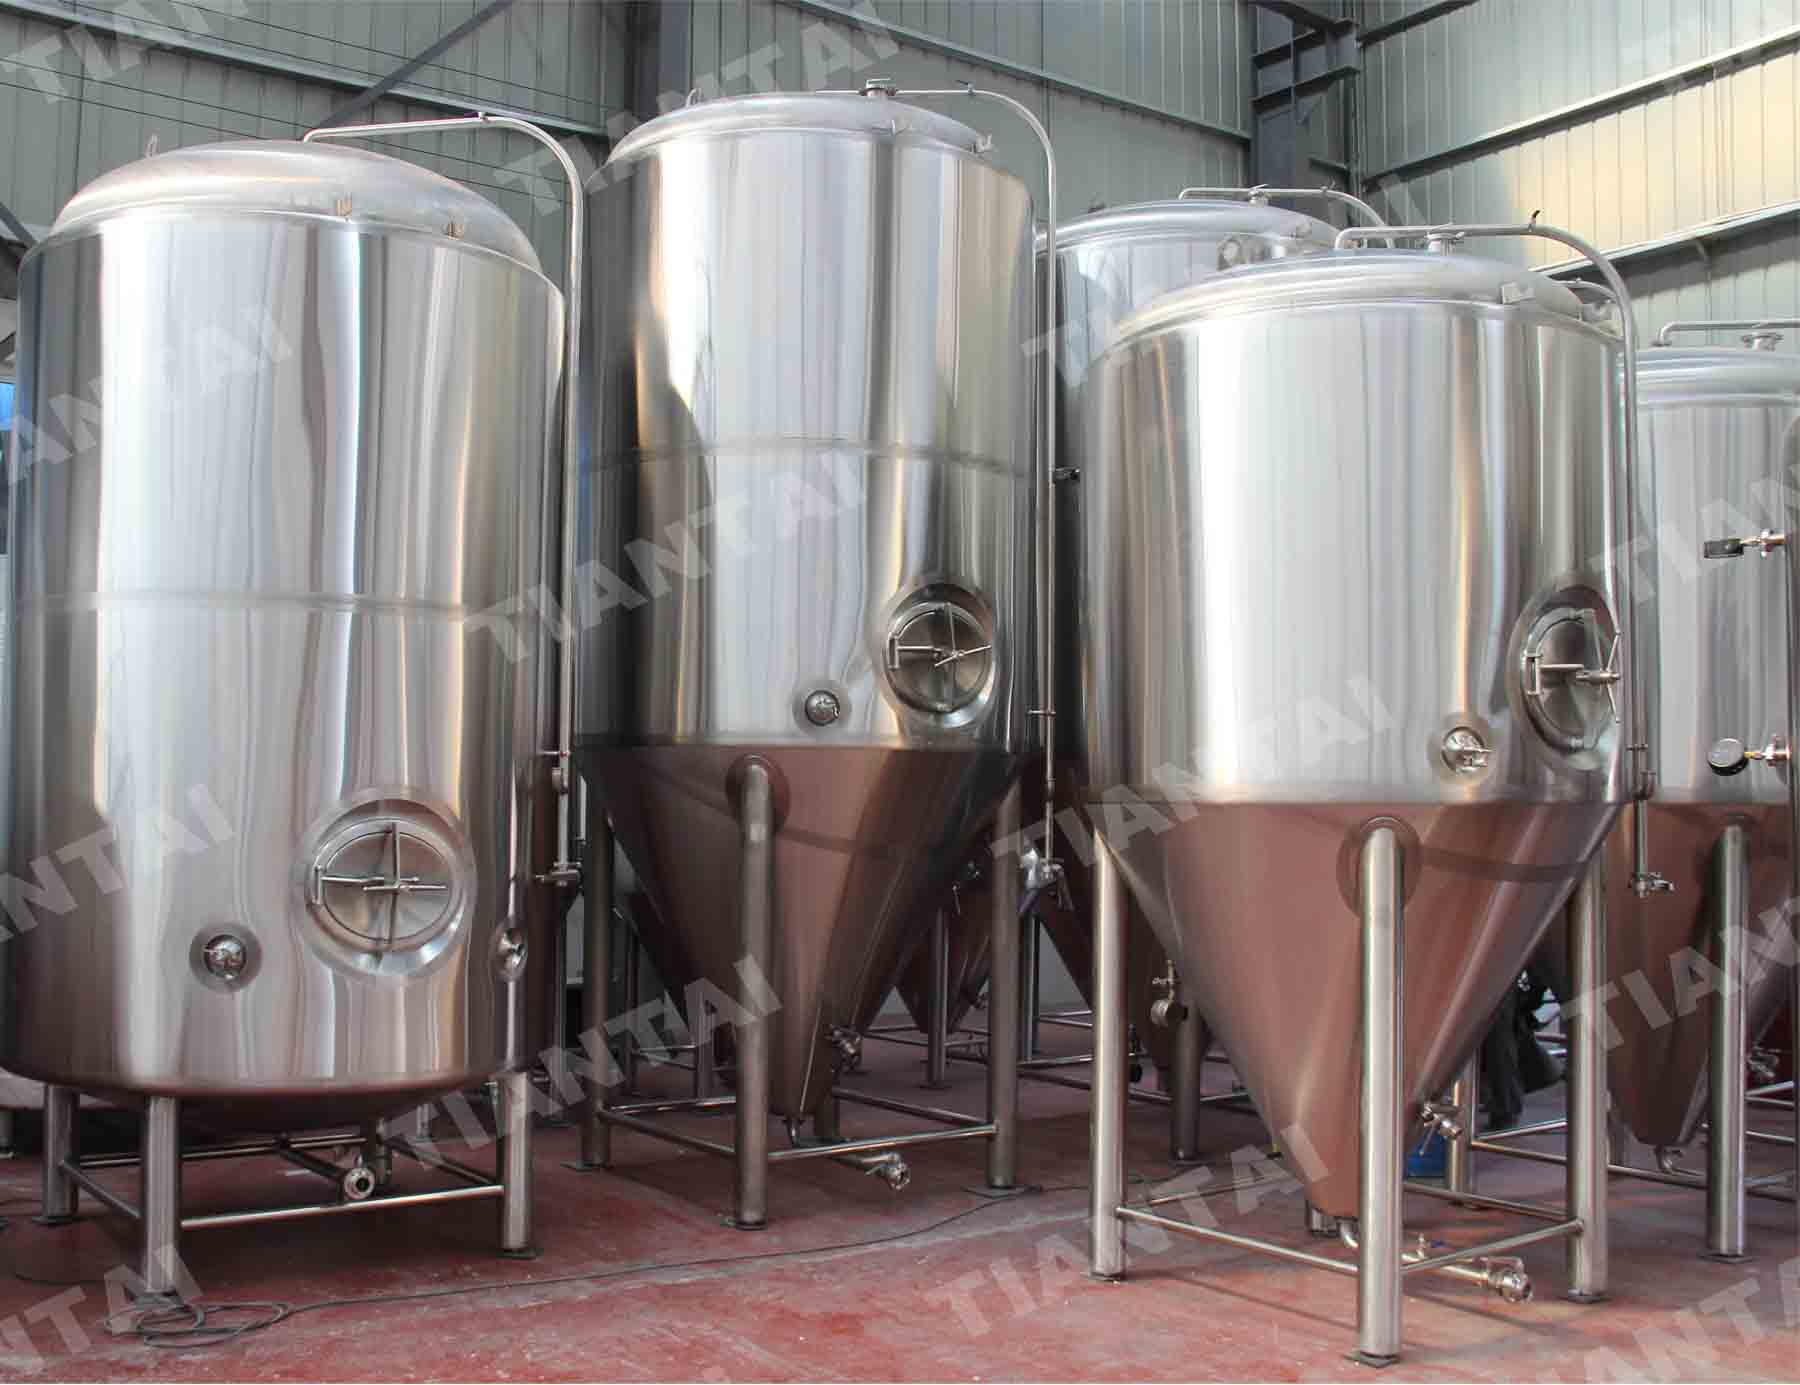 What kind of accessories should installed on fermenters?